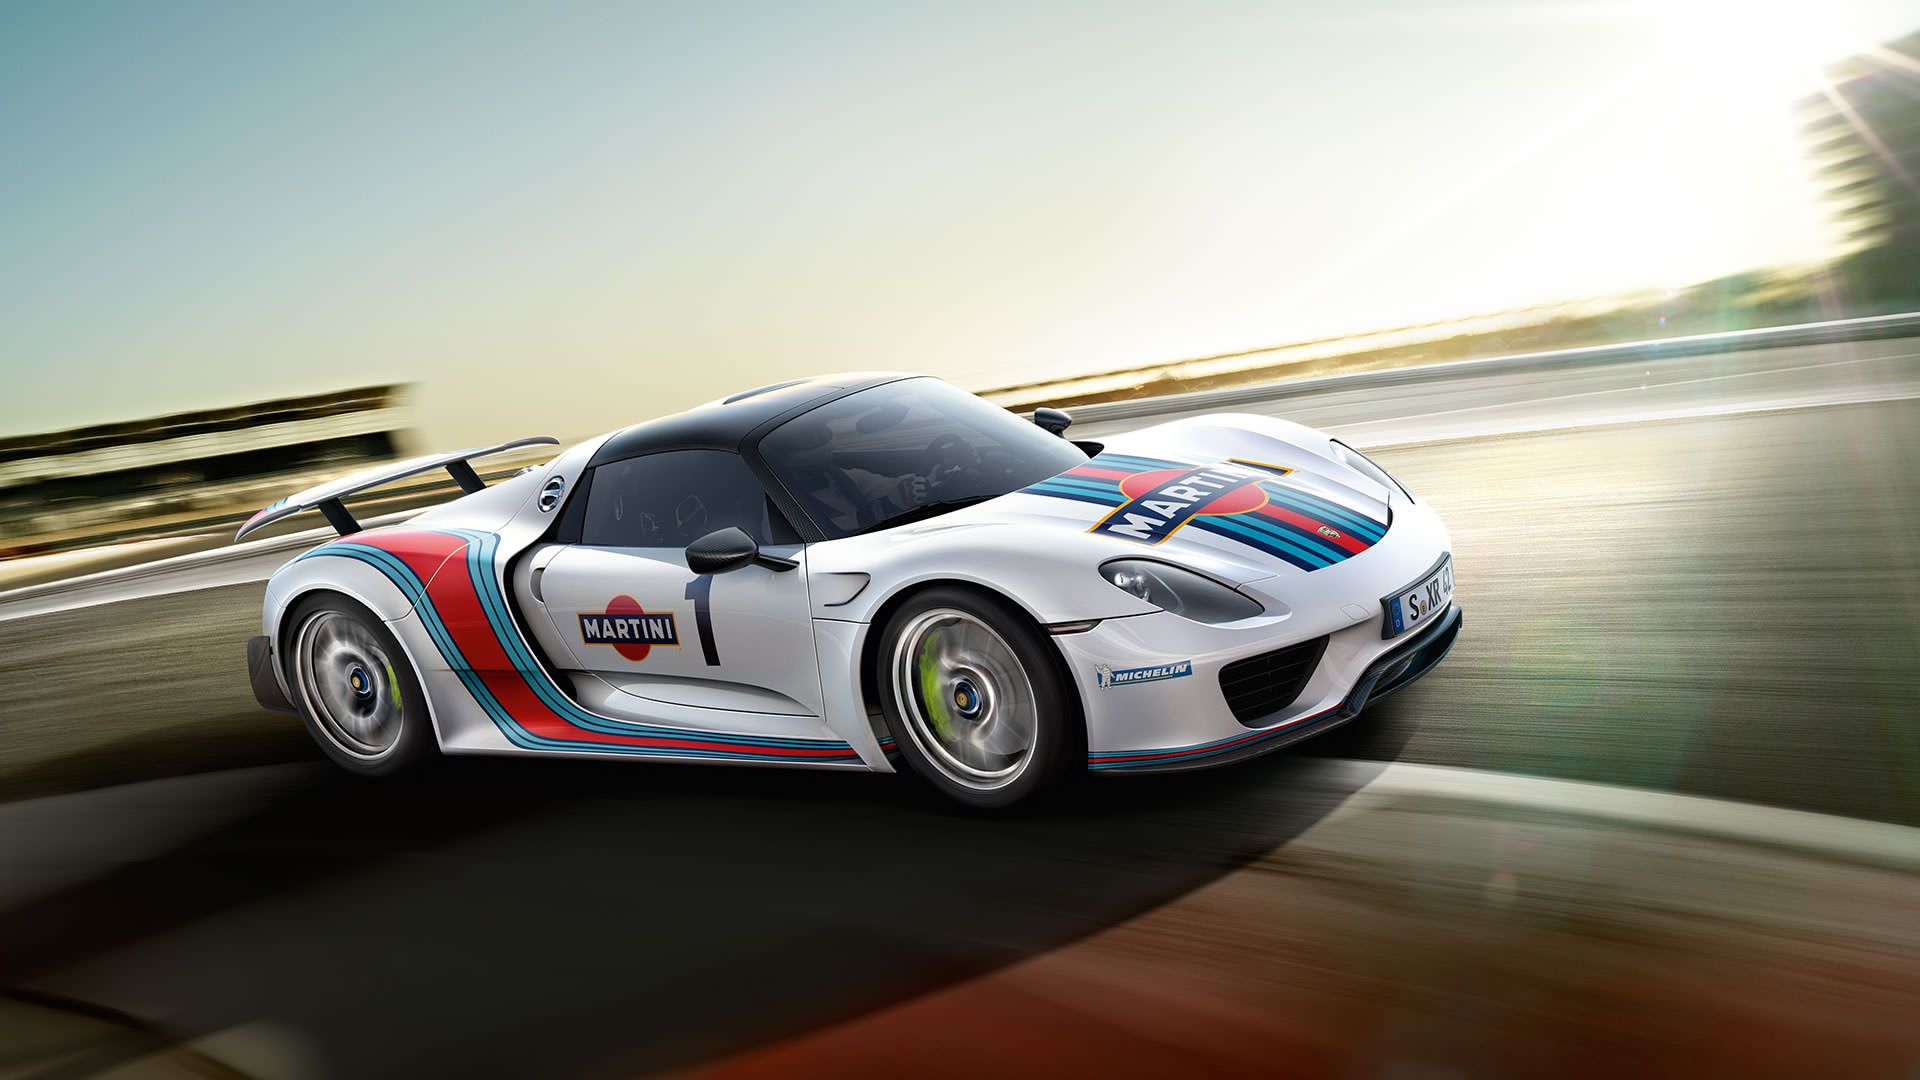 Porsche 918 Spyder using Martini Racing livery side view front angle